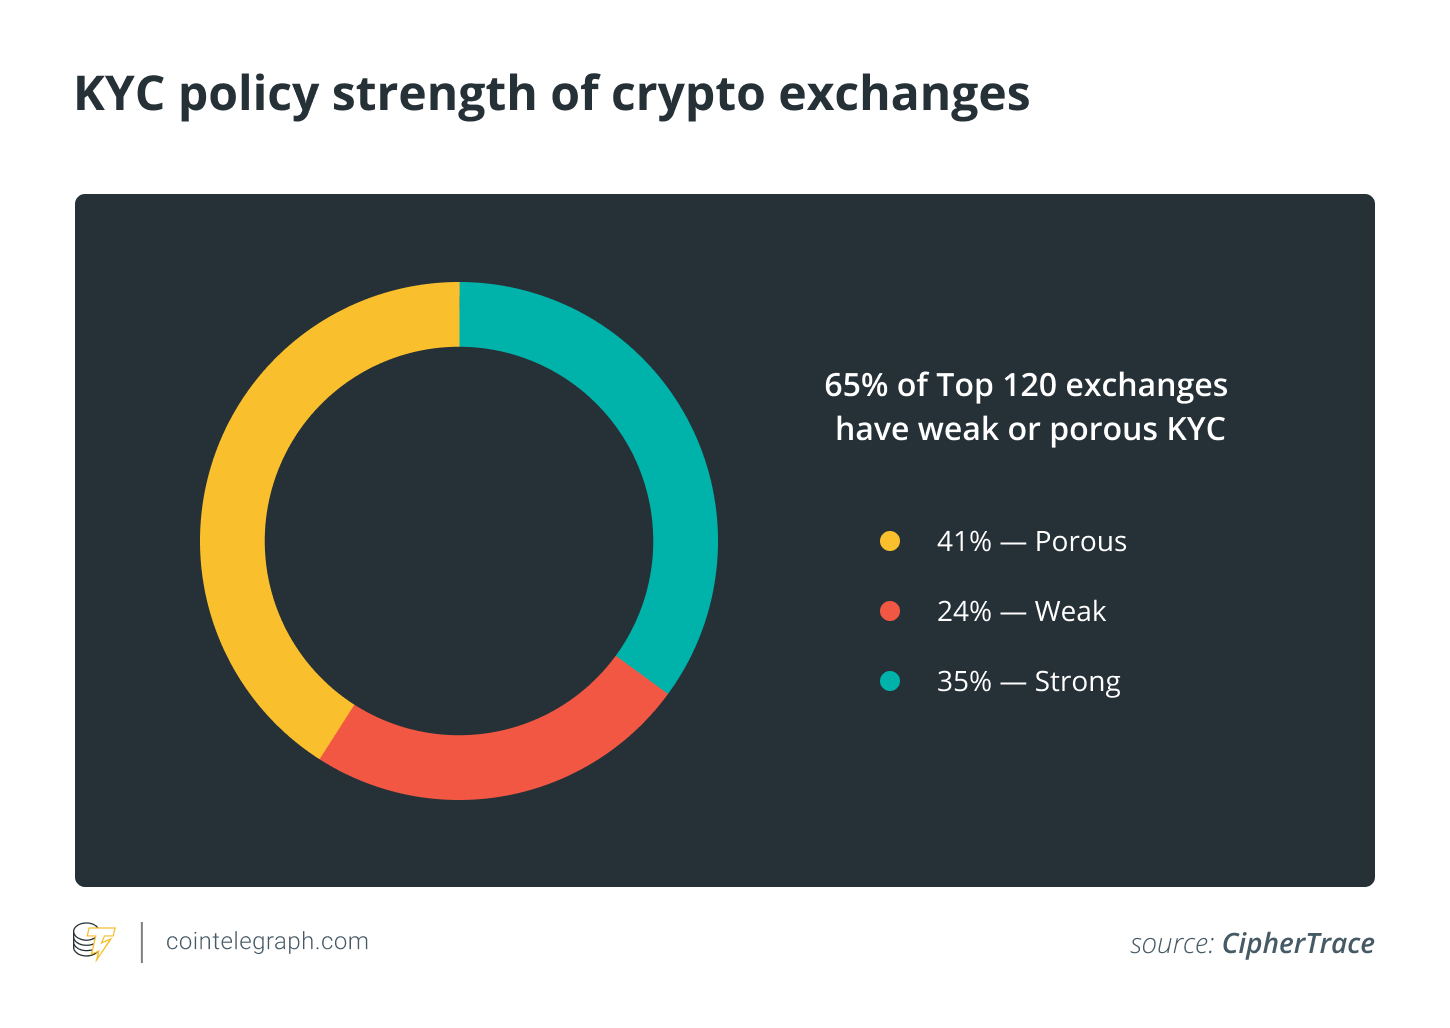 KYC policy strength of crypto exchanges